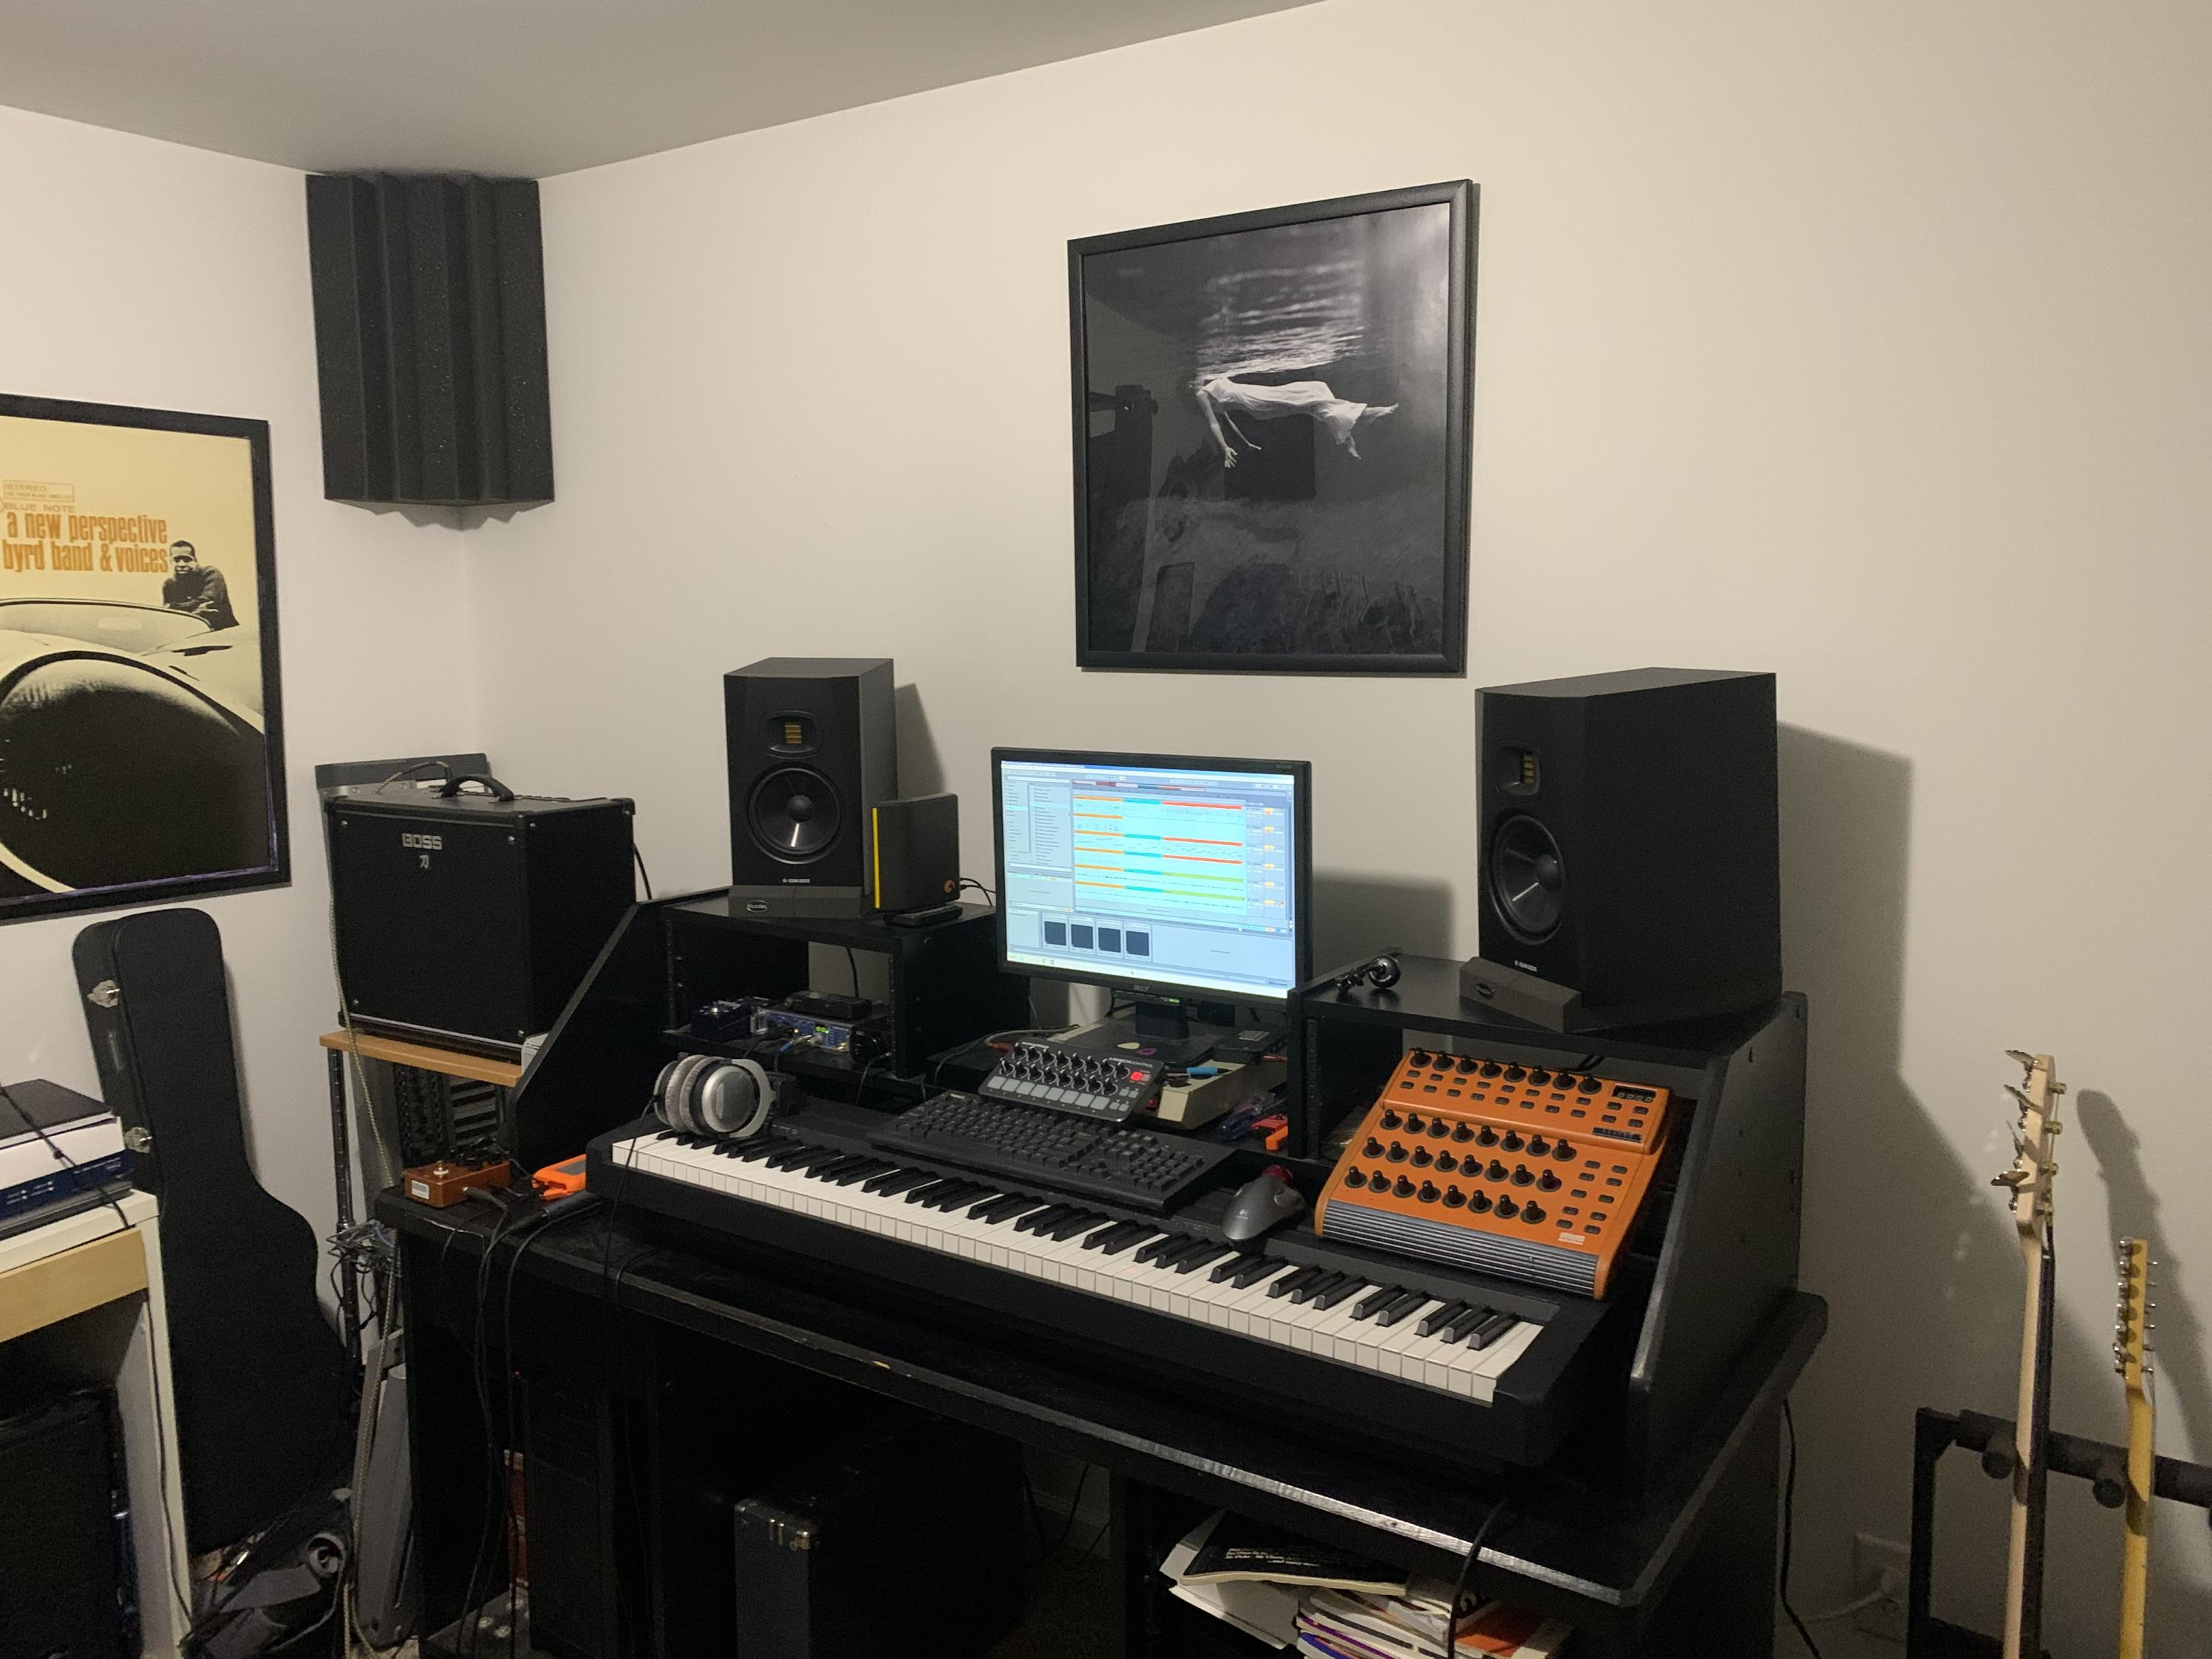 Feeling cramped: need table  for home studio-970d63ad-6ef7-48ed-9714-86f306c205dc-jpg